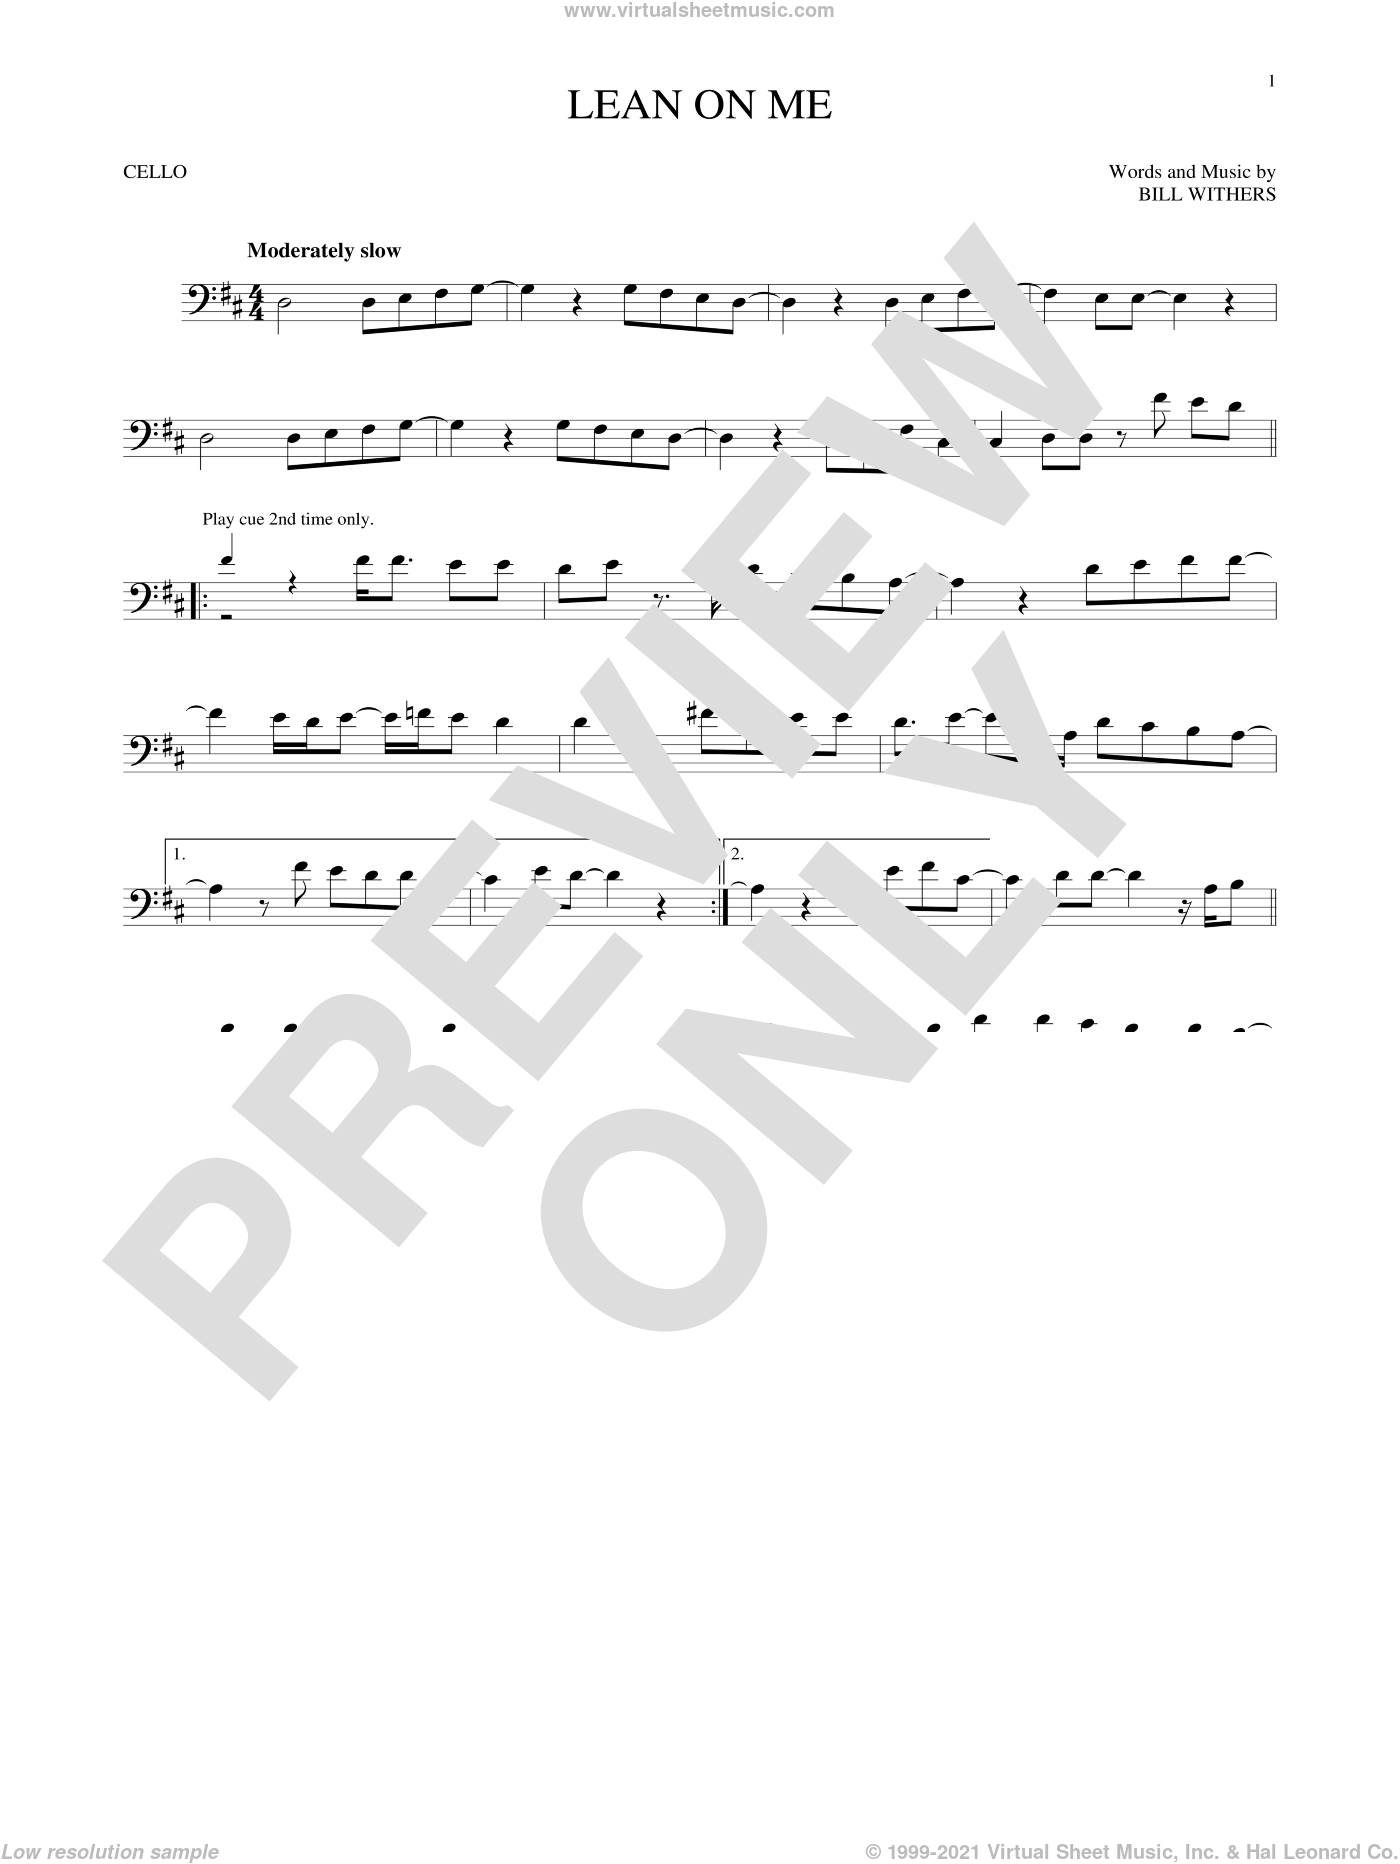 Lean On Me sheet music for cello solo by Bill Withers and Club Nouveau, intermediate skill level